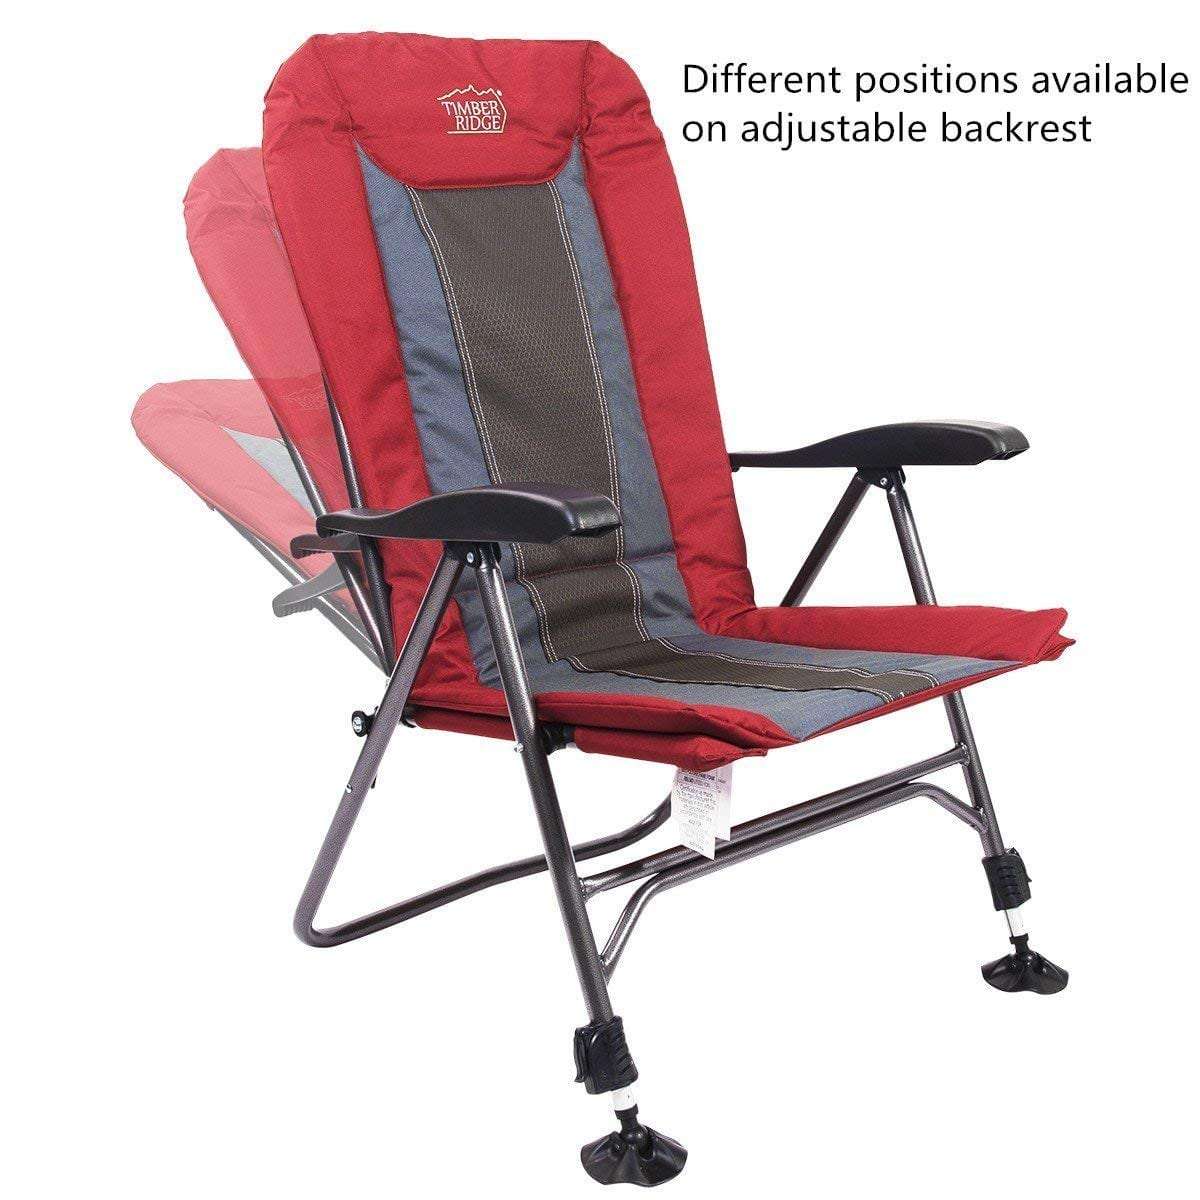 fishing chair legs x rocker gaming power cable timber ridge camping folding heavy duty with adjustable reclining padded back and supports 300lbs armrest outdoor garden 79 99 fs